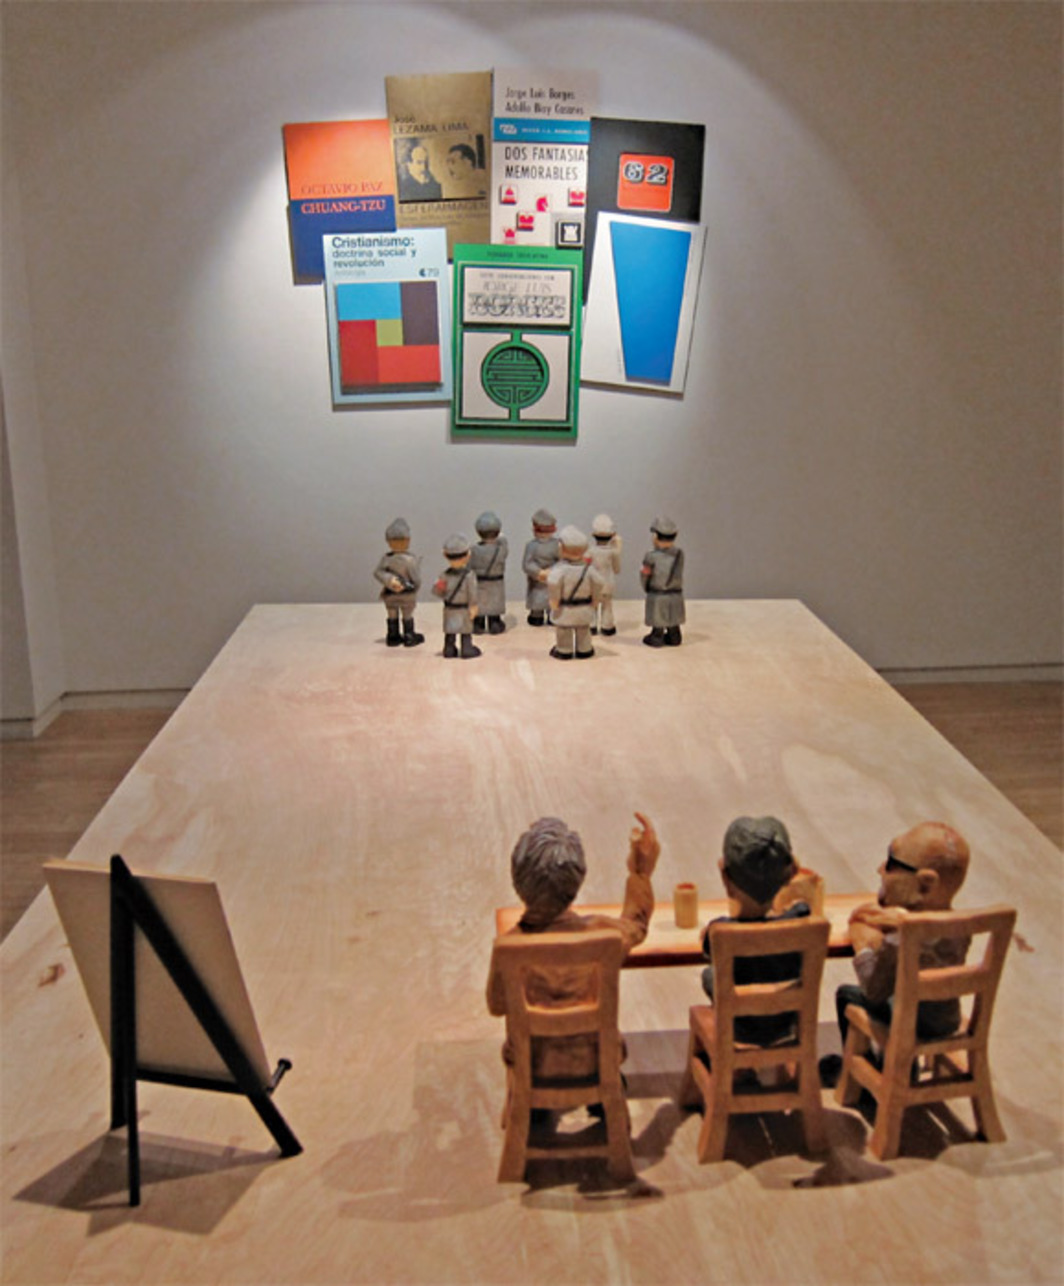 Nicolás Guagnini, The Panel Discussion, the Tennis Match, and a Bodegón, 2011, oil on shaped aluminum composite panel, carved wooden figures, miniature easel with facsimile catalogue, plywood table, twenty-second audio loop. Installation views, Andrew Roth, New York.